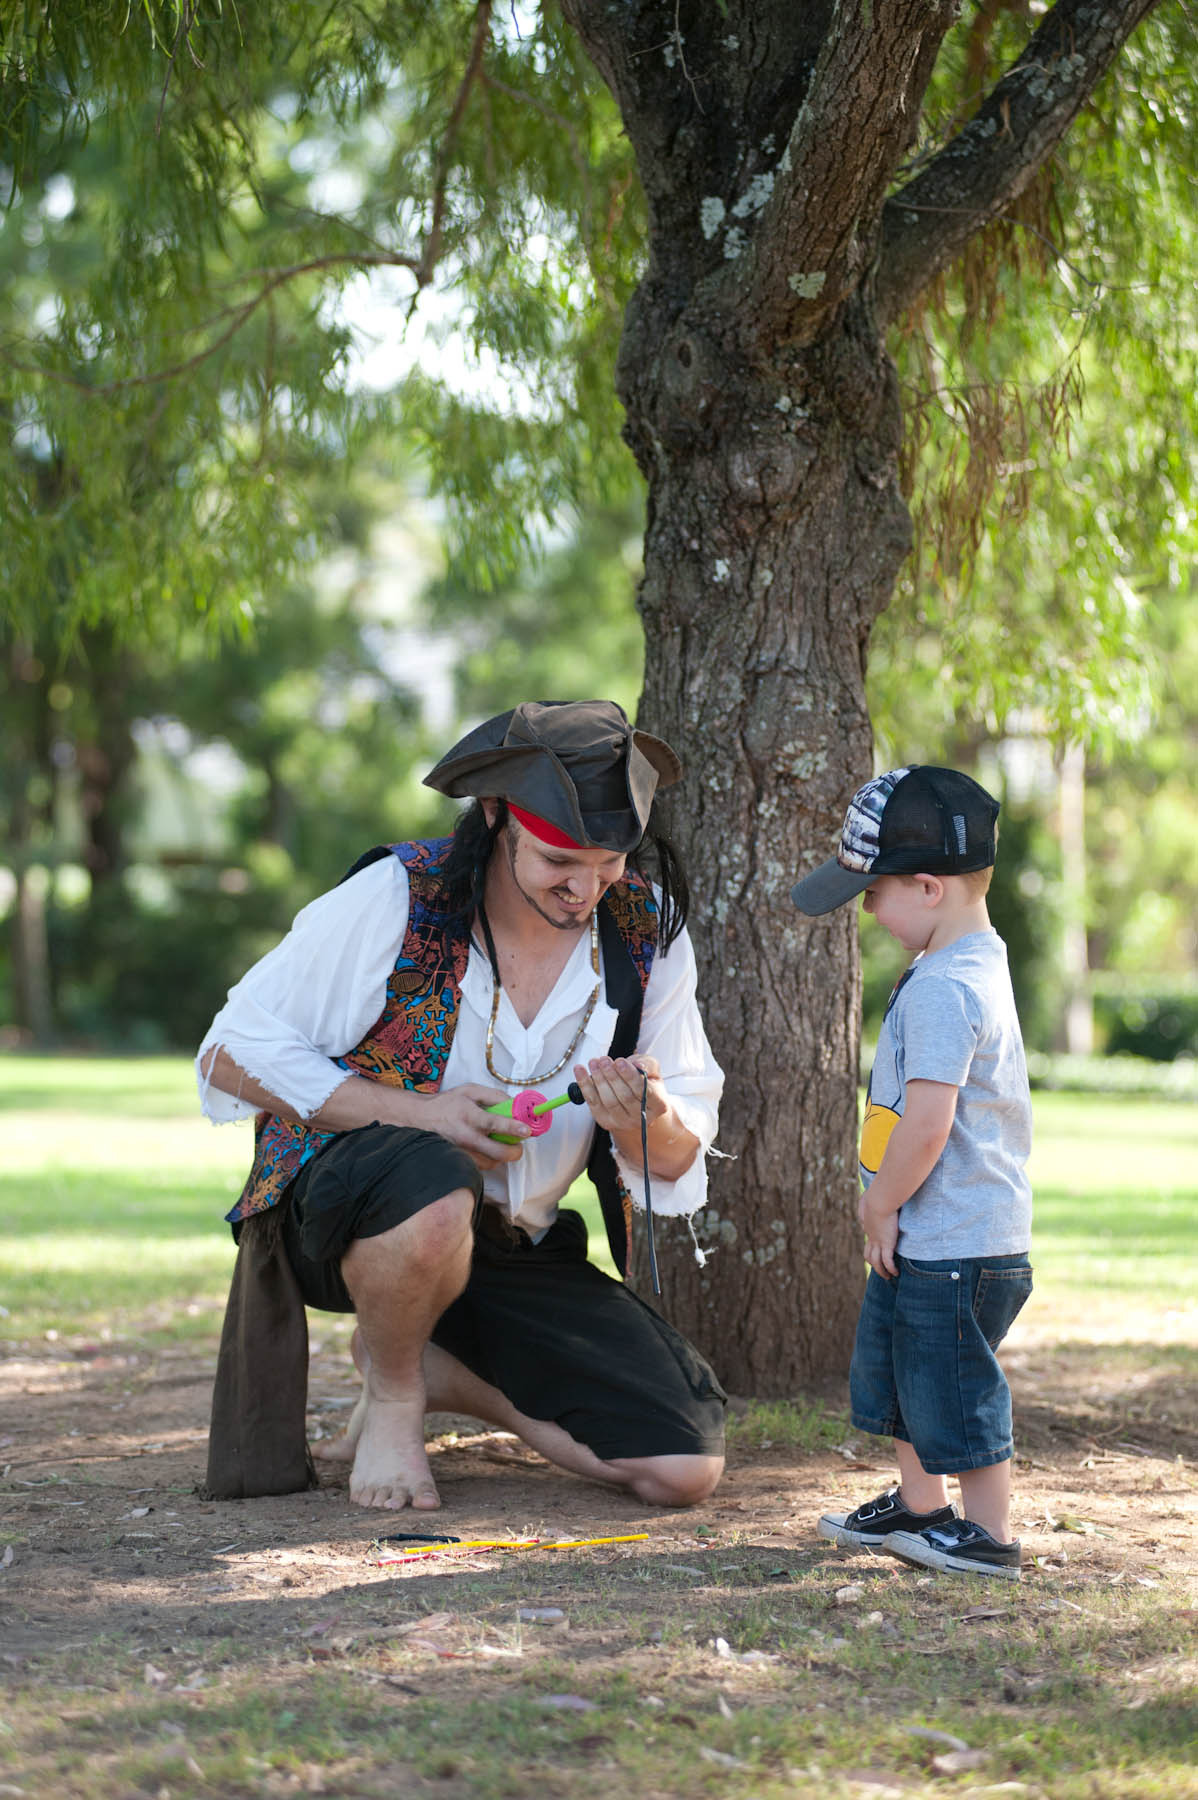 piratepete (1 of 6).jpg